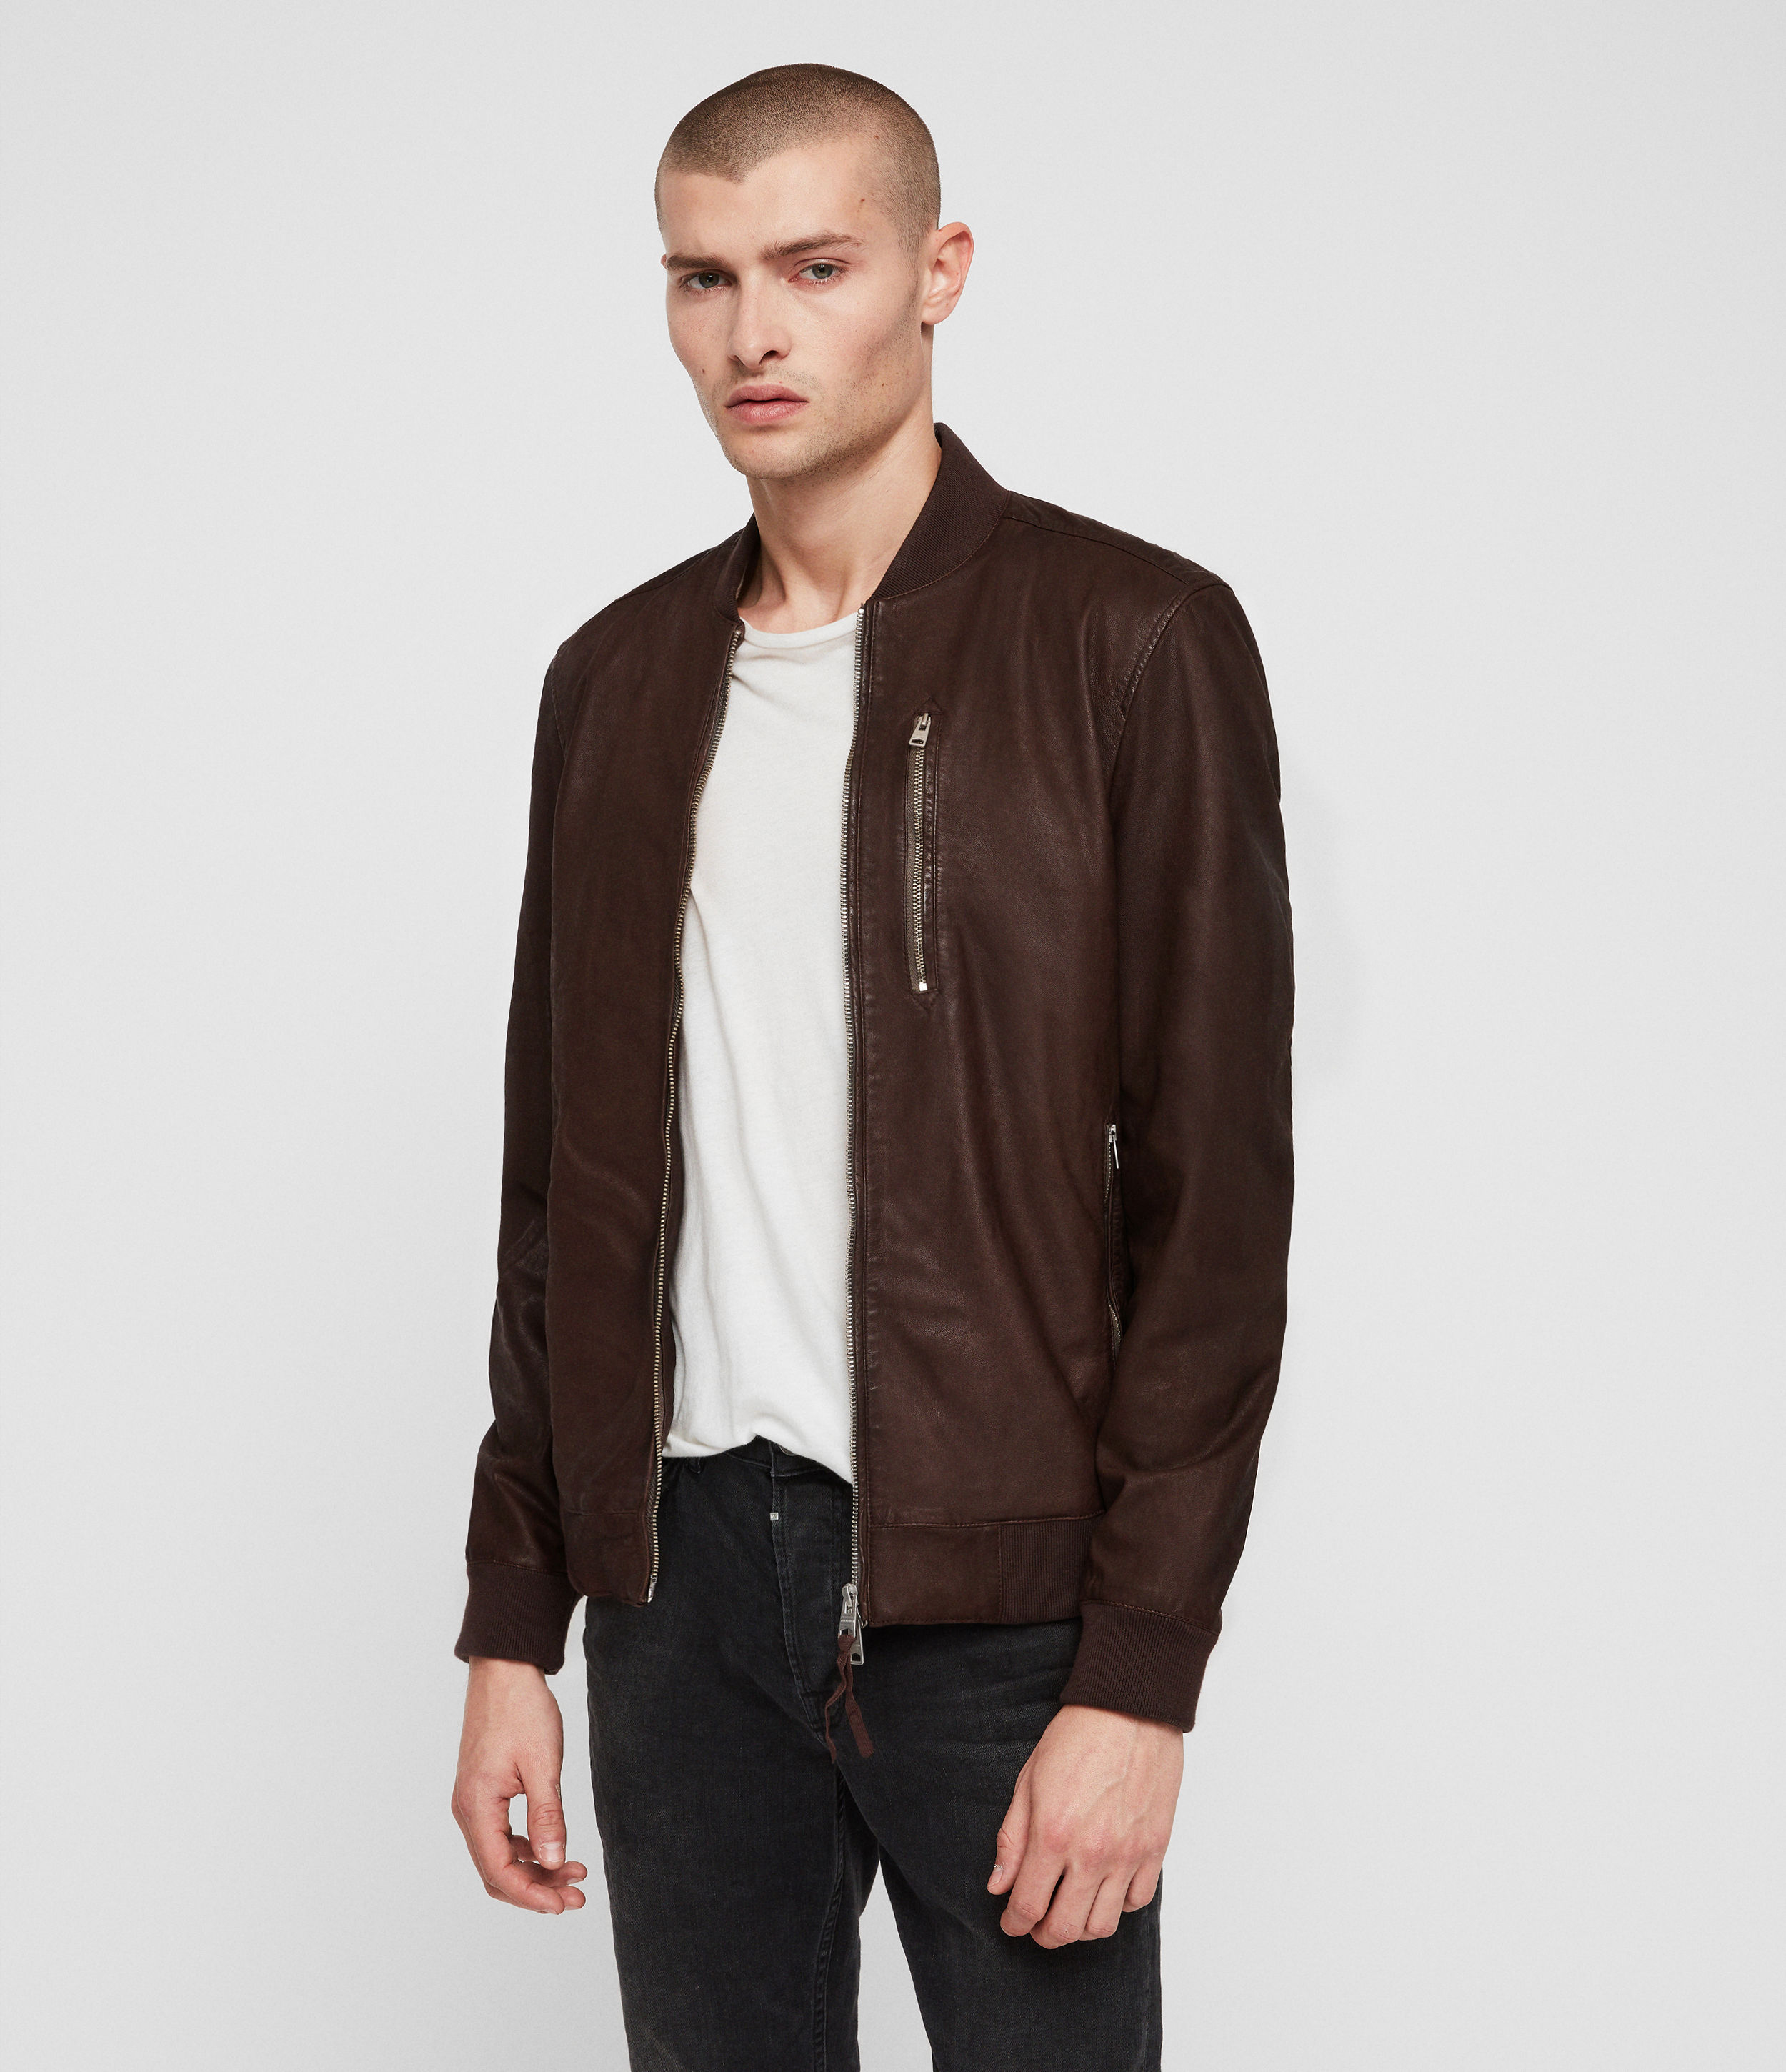 Kino Leather Bomber Jacket by AllSaints